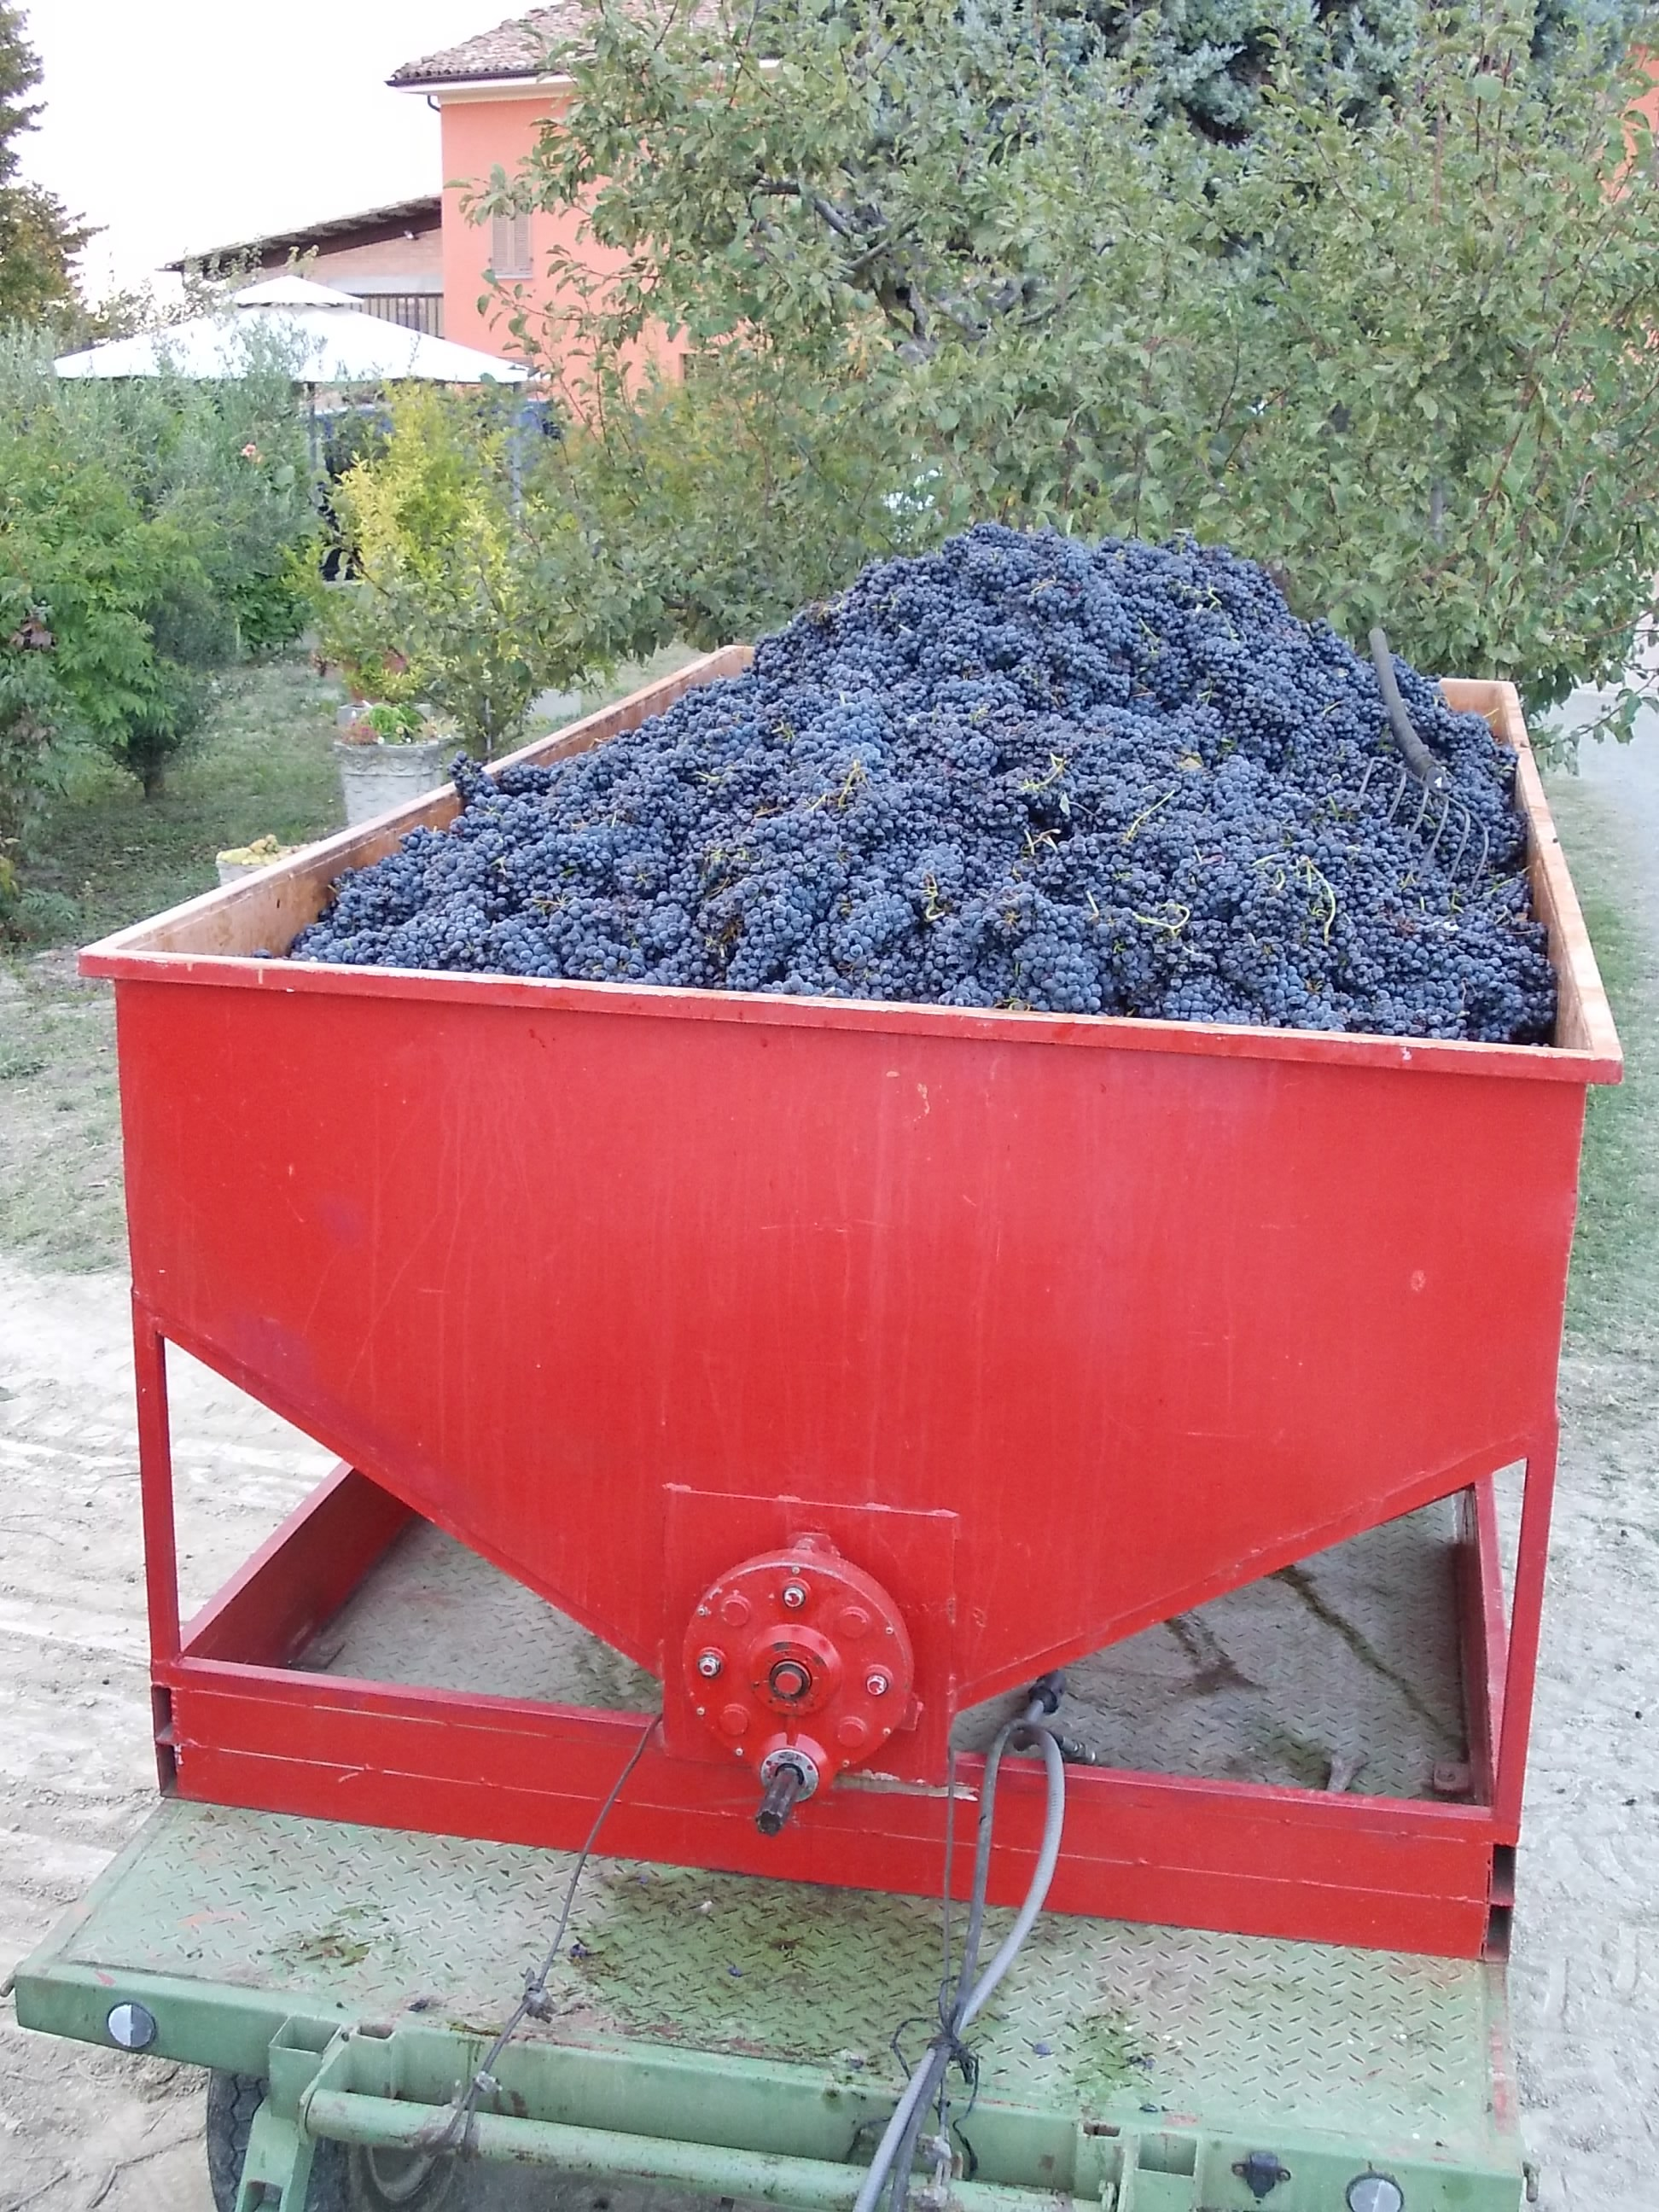 grapes-ready-to-be-crushed